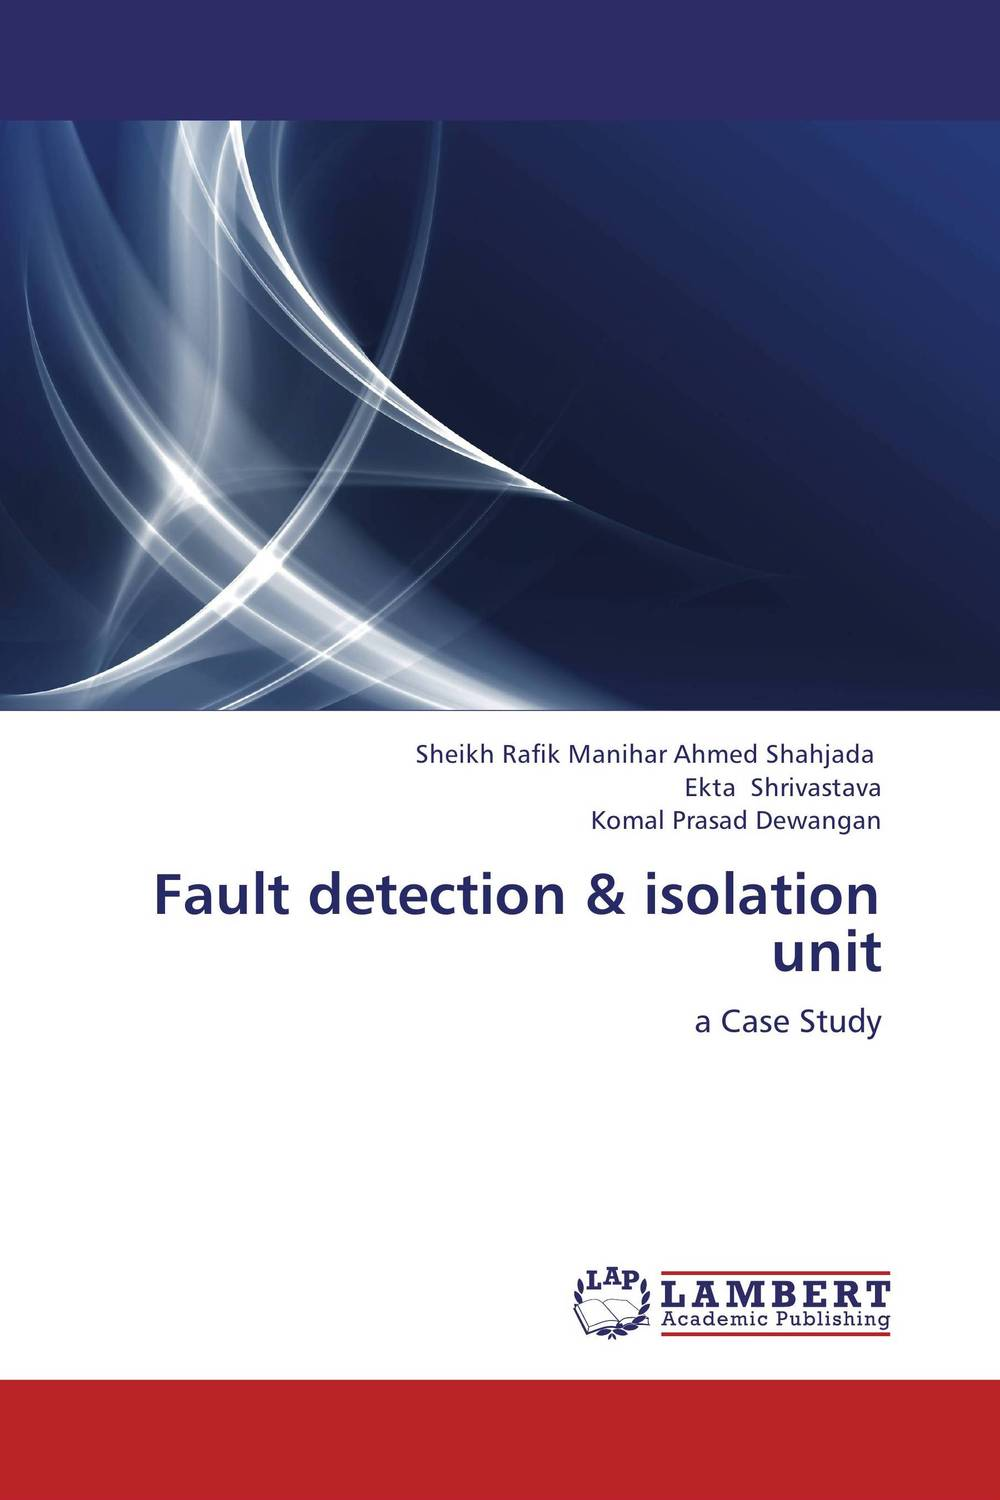 цена на Fault detection & isolation unit